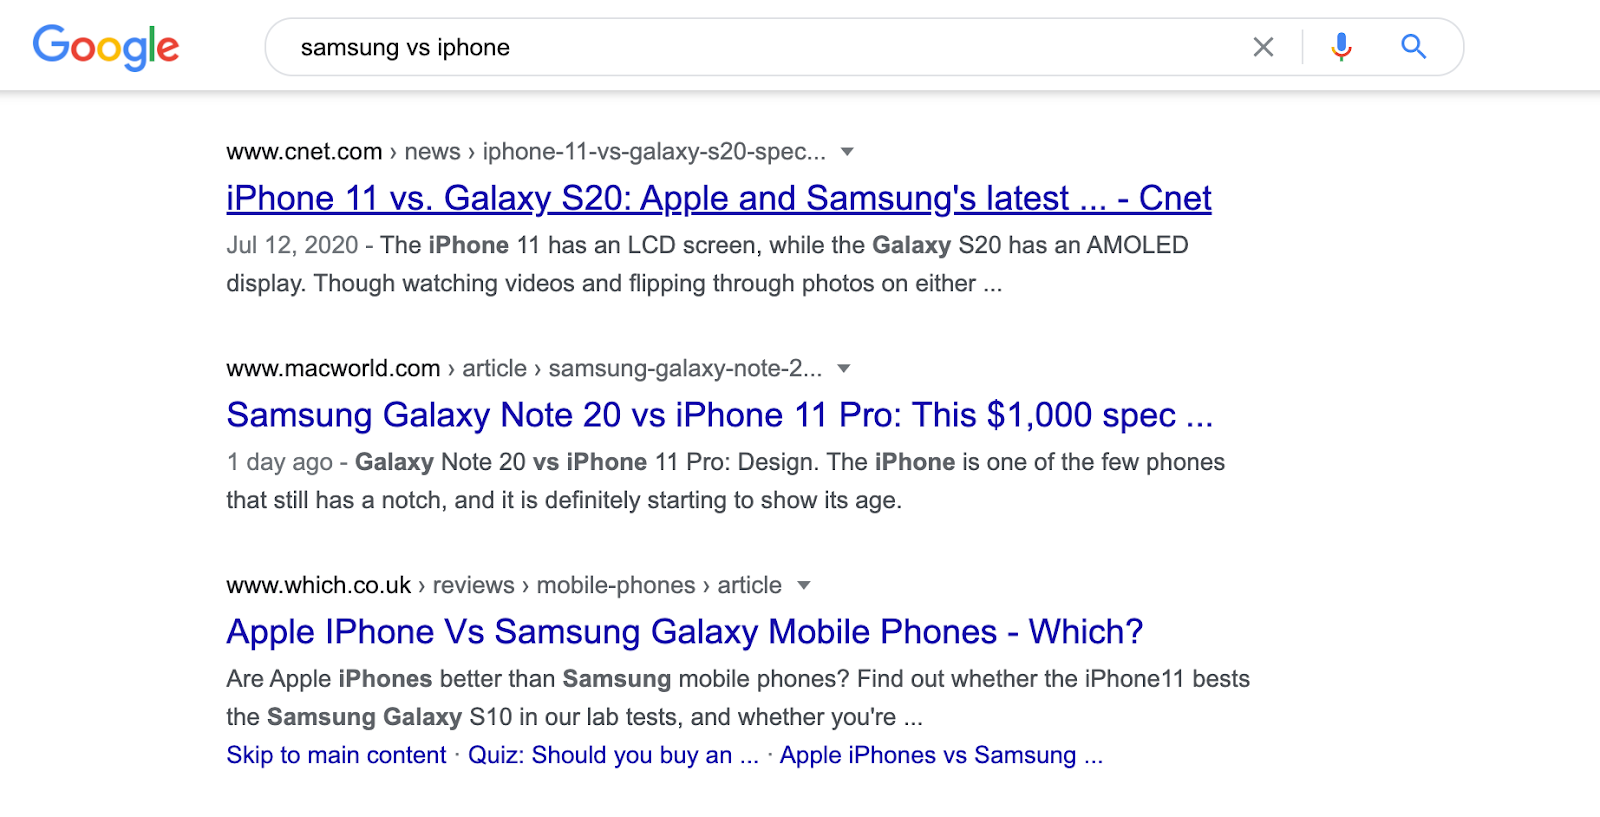 Samsung vs iPhone SERP screenshot